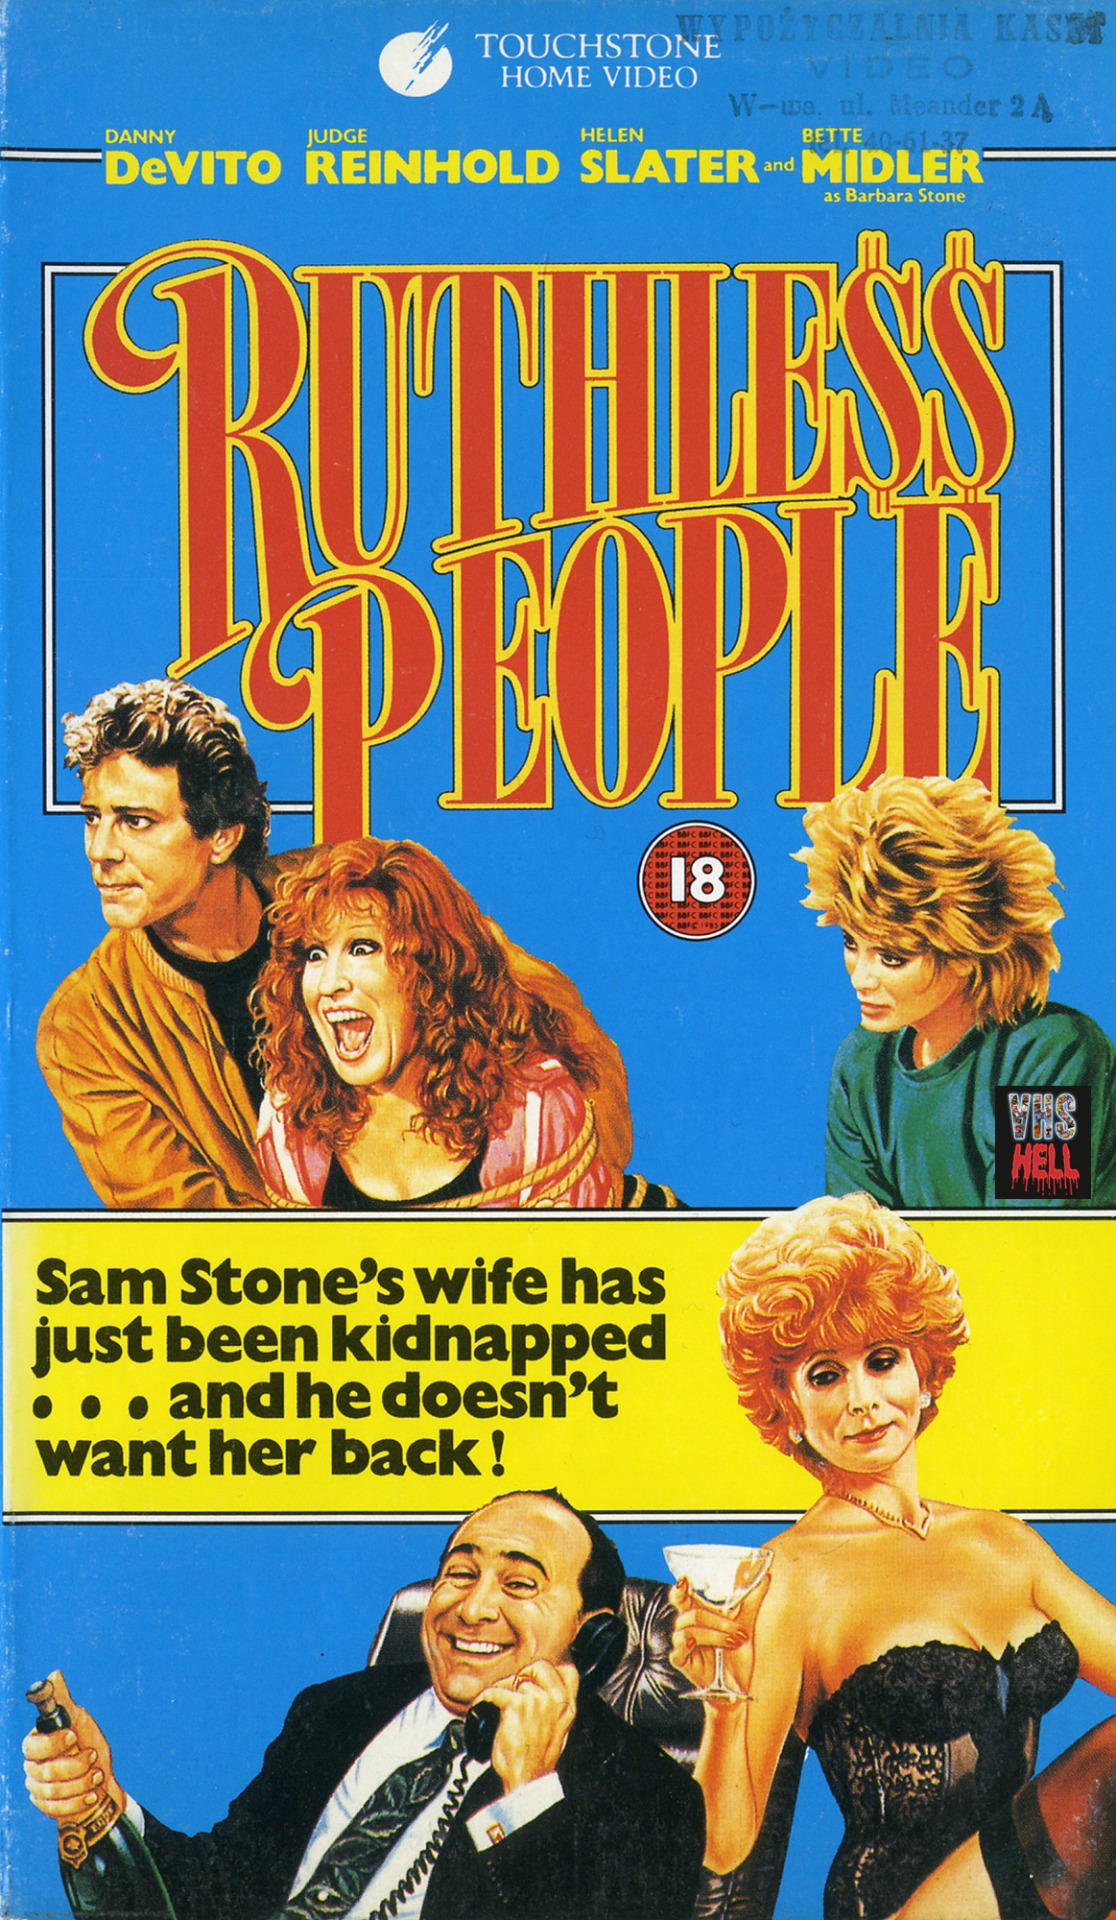 """S1 E7 """"I've Been Kidnapped by Kmart!"""" - It's like mom always said: don't try to fake your spouse's kidnapping if your mistress is just gonna frame you for murder. This week, Daniel sees Ruthless People for the first time. We talk 1980s style and how weird it is that this is an R-rated Disney movie. Mick Jagger yells at us, and basically everyone else. Put on your duck mask and listen now!Listen and subscribe here."""